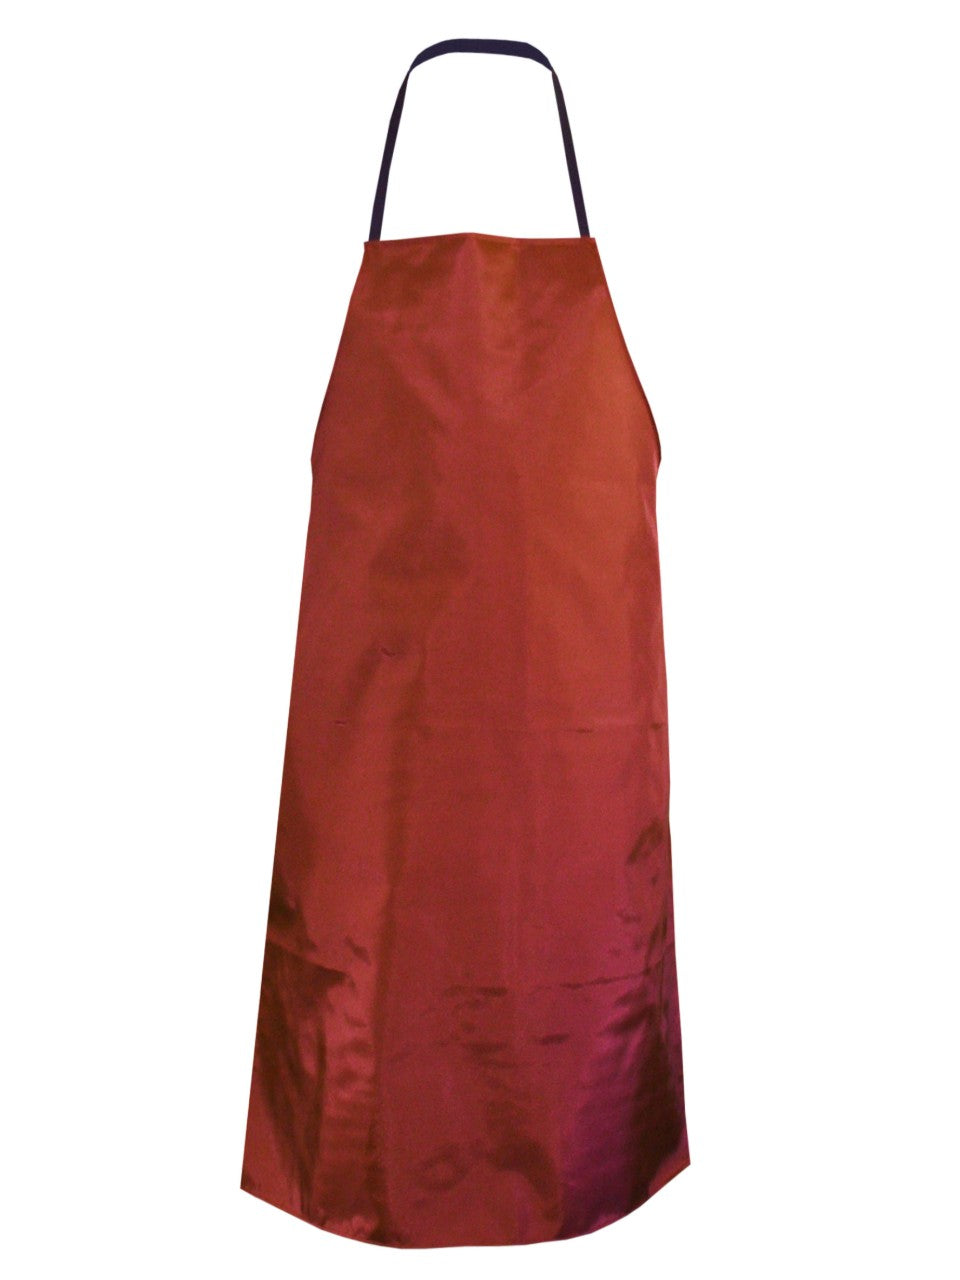 Bib Apron Nylon Wipedown - Red